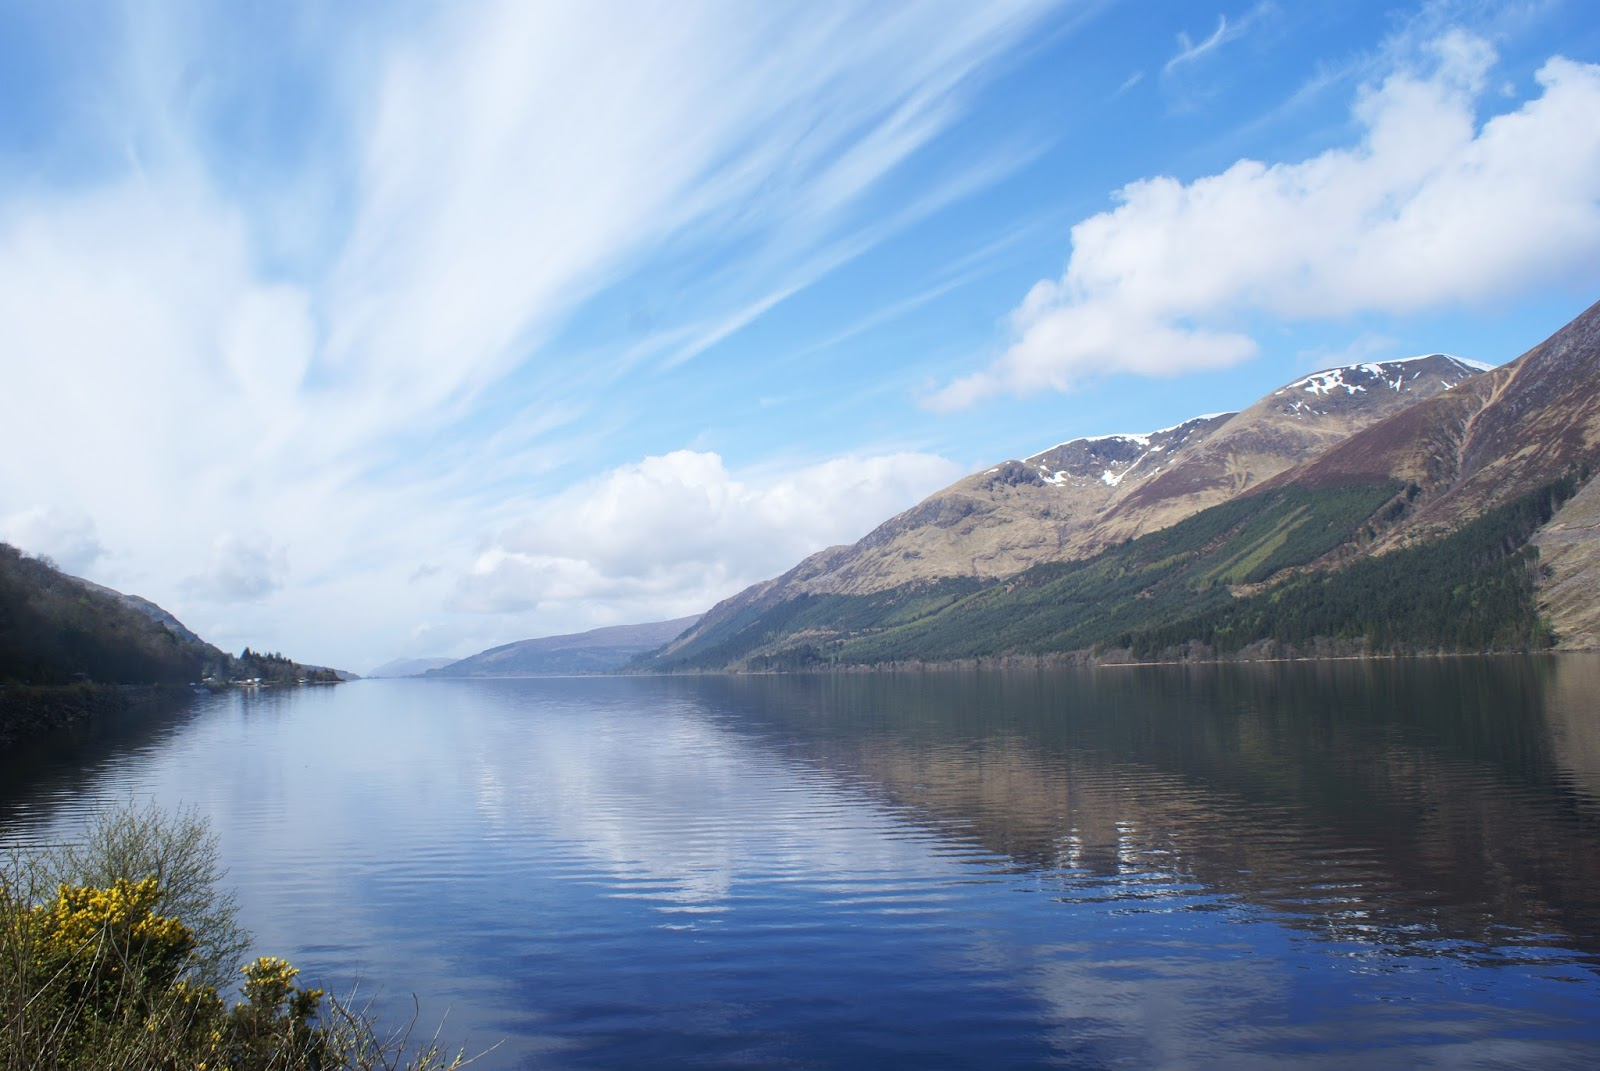 loch lochy scotland uk road trip travel united kingdom